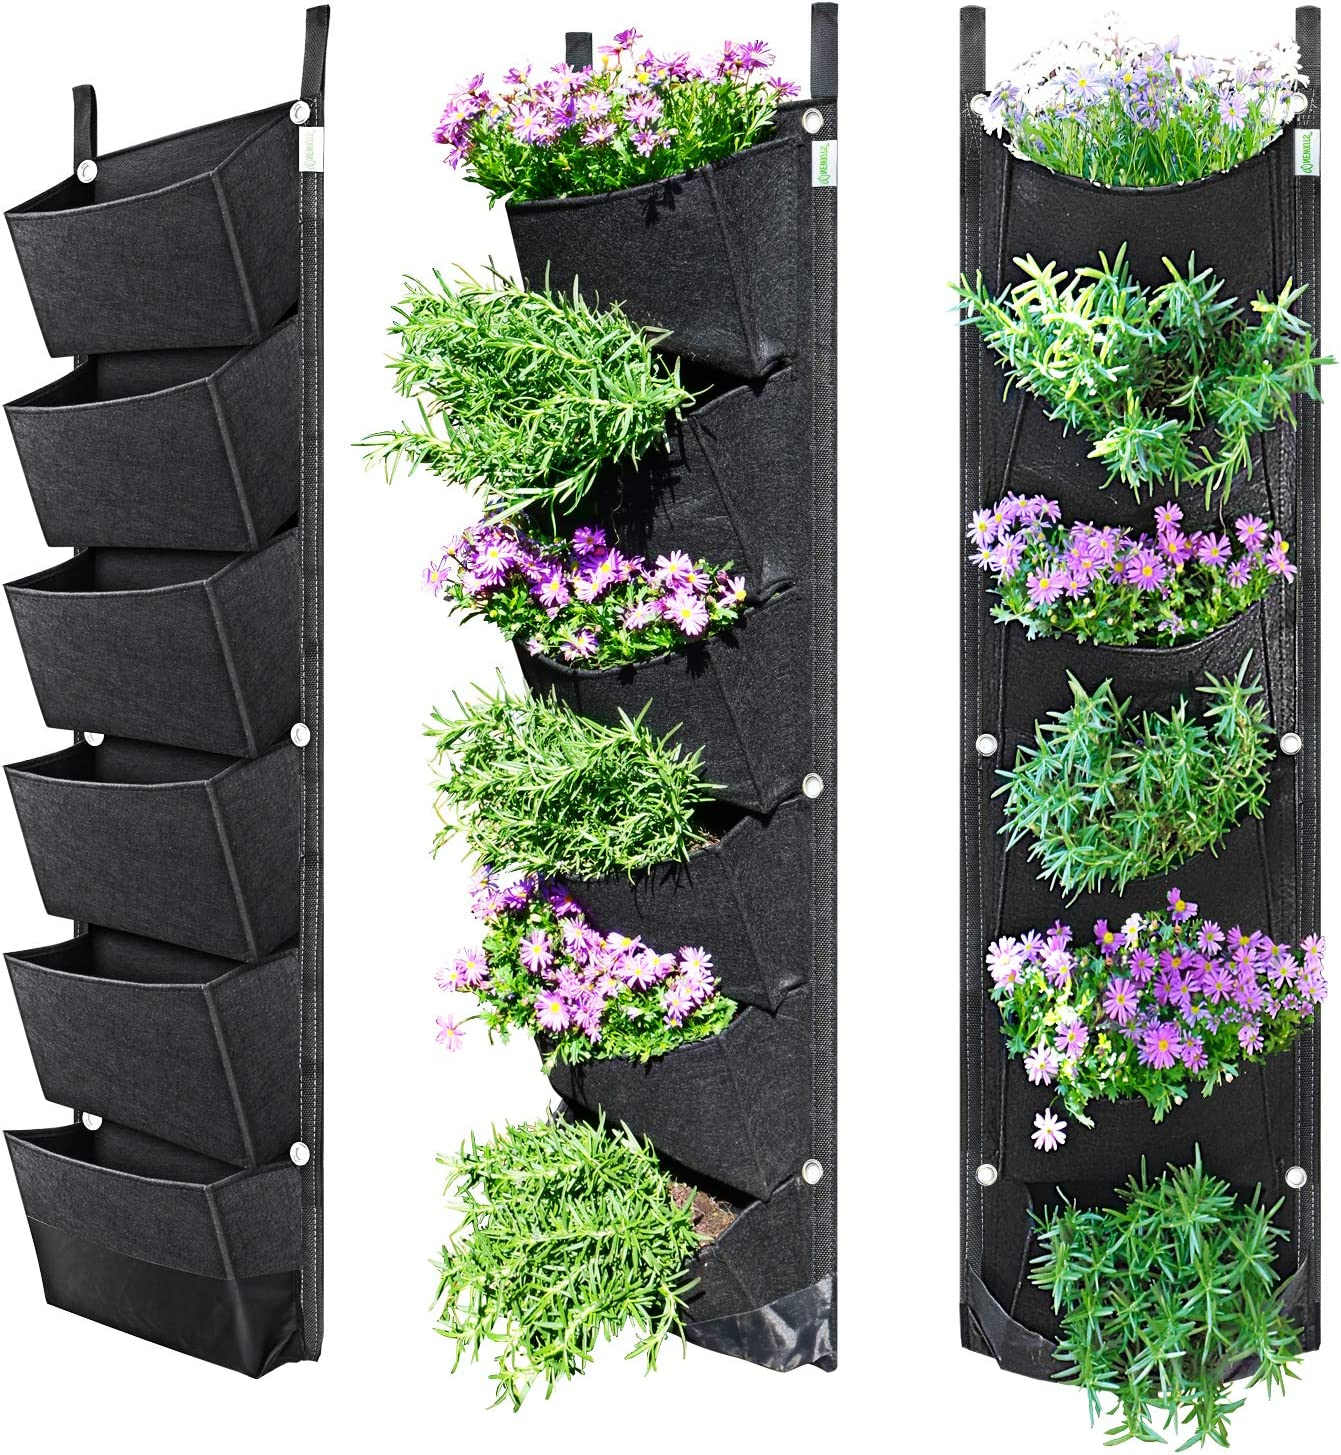 NEWKITS Vertical Wall Garden Planter with 6 Pockets Best Plant Growth Design Large Space Waterproof Breathable Use for Hanging Herb Garden Courtyard Office Home Decoration (Black)